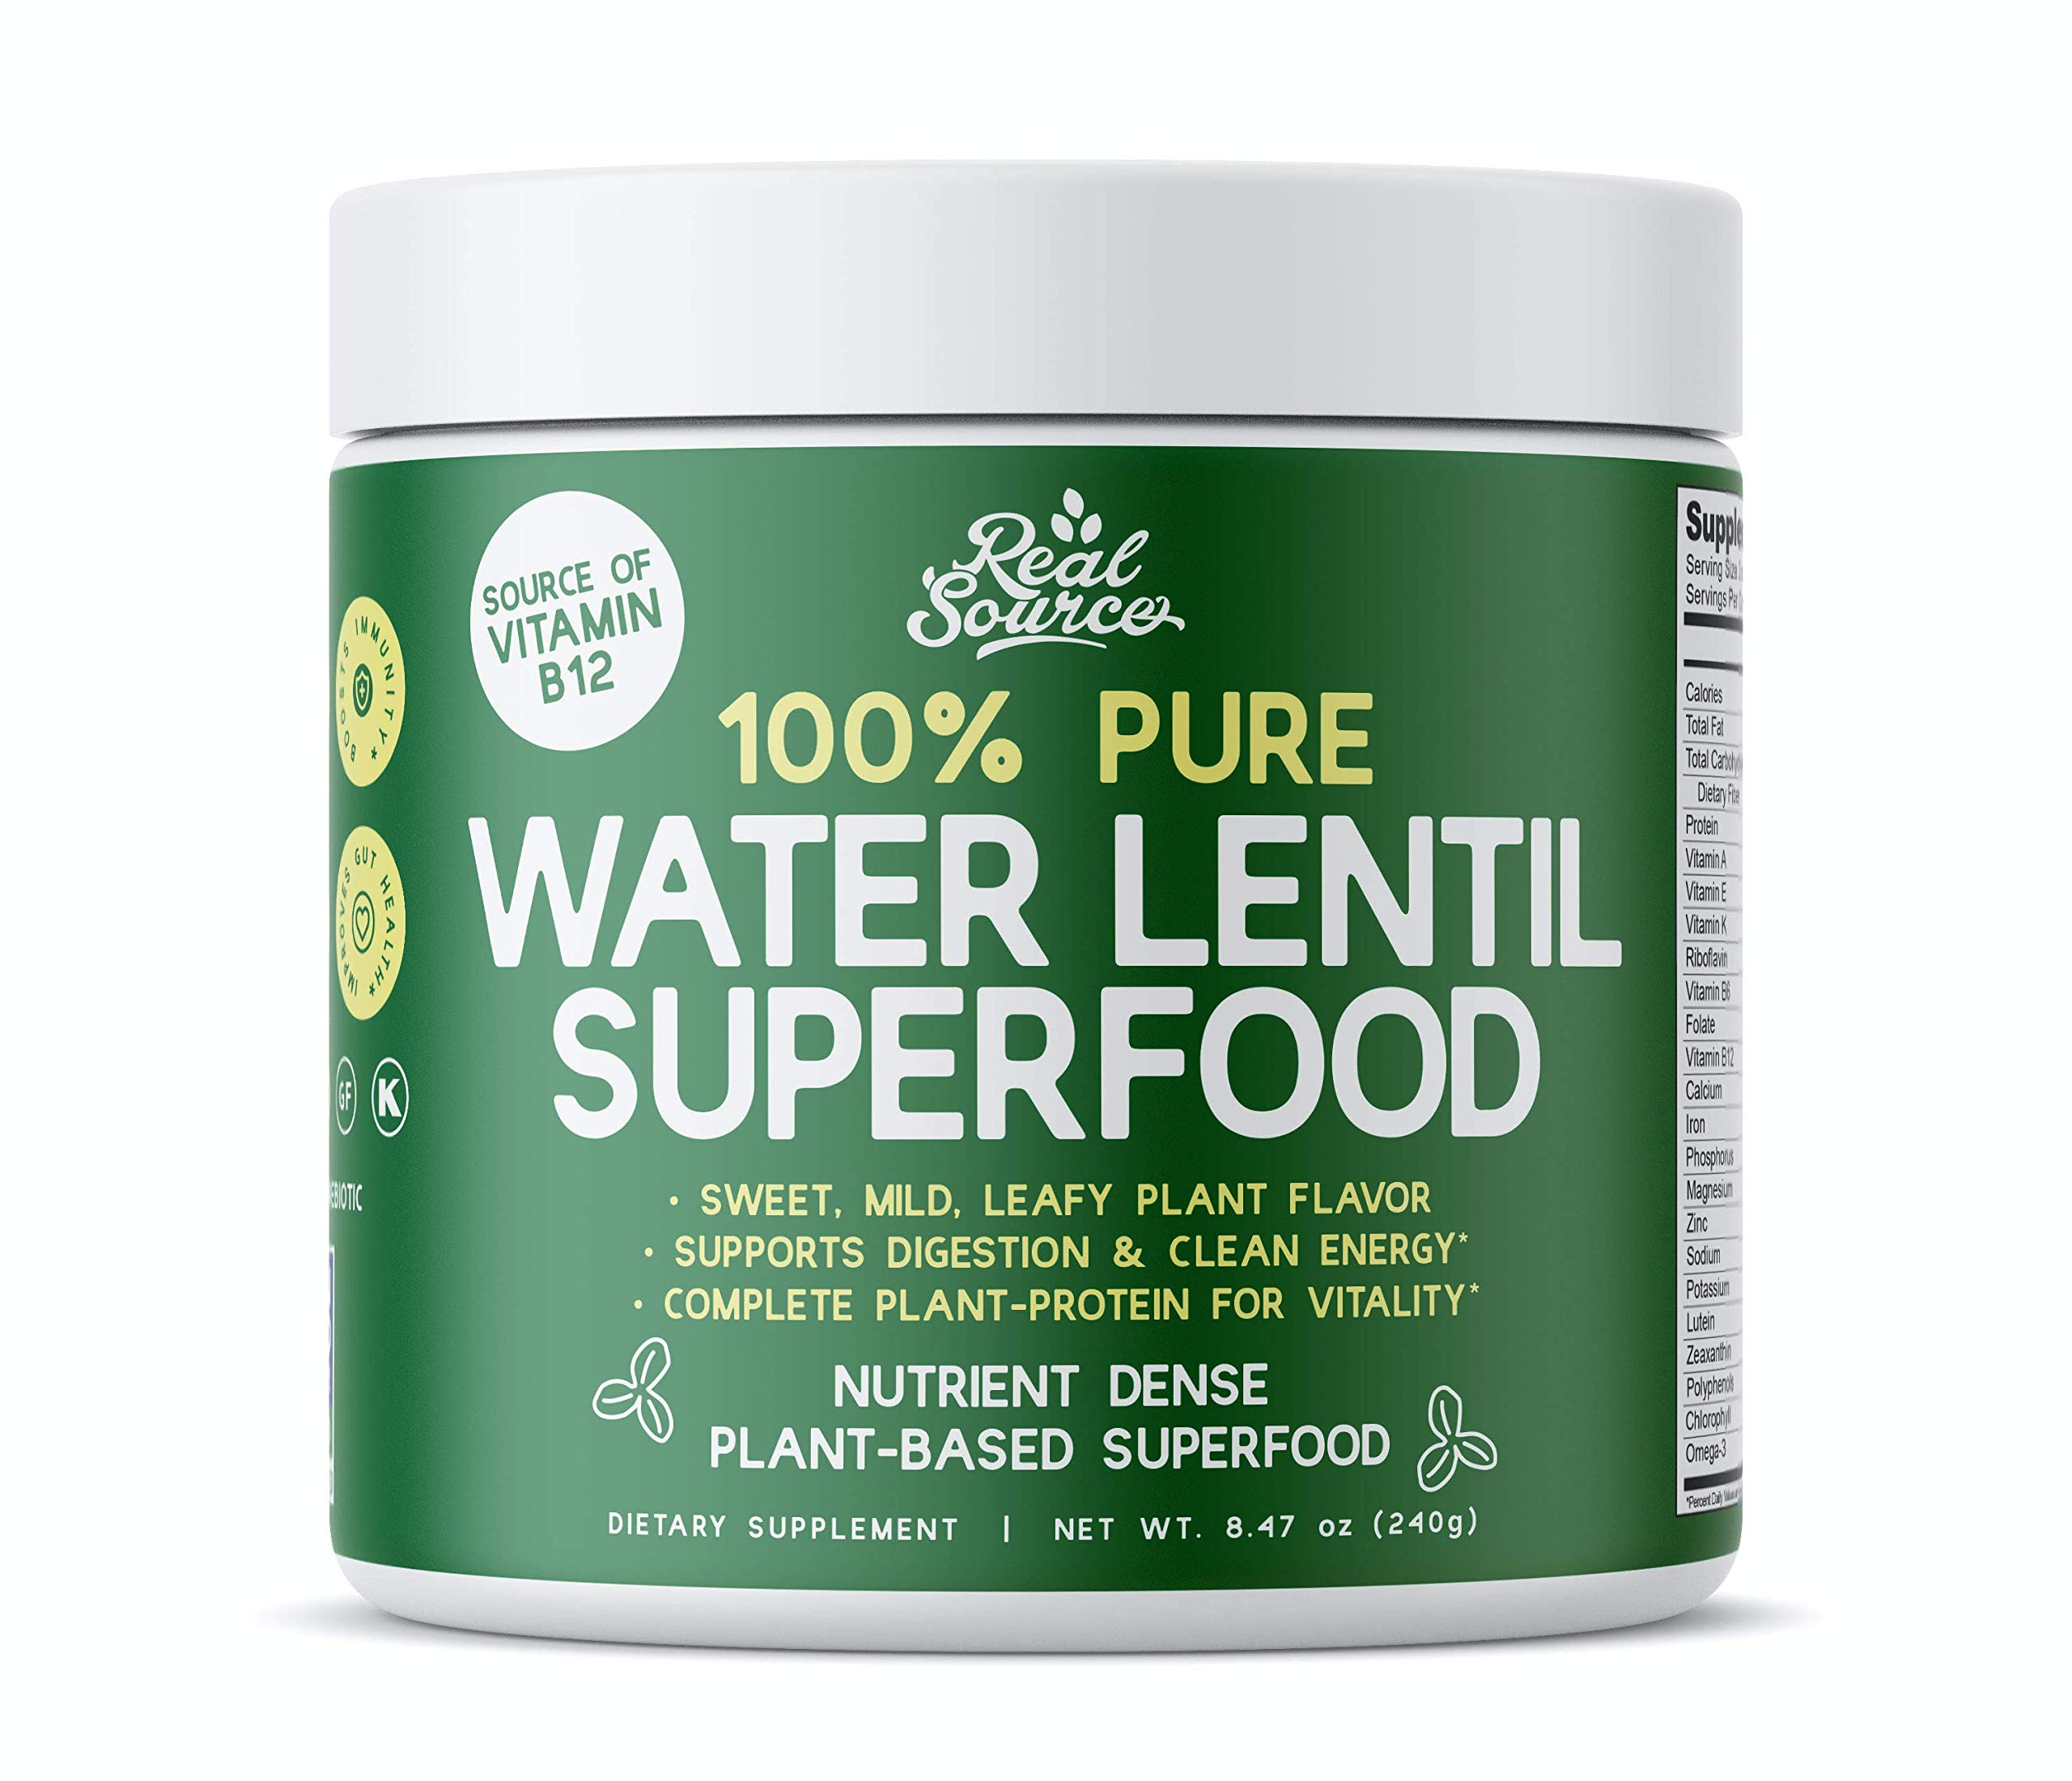 Real Source Water Lentil Superfood Daily Veggie Juice Powder. Made in USA, Sustainable, Supergreen Protein and LENTEIN Duckweed Supplement for Smoothies Vegan, Gluten Free, 10 Servings, 240g